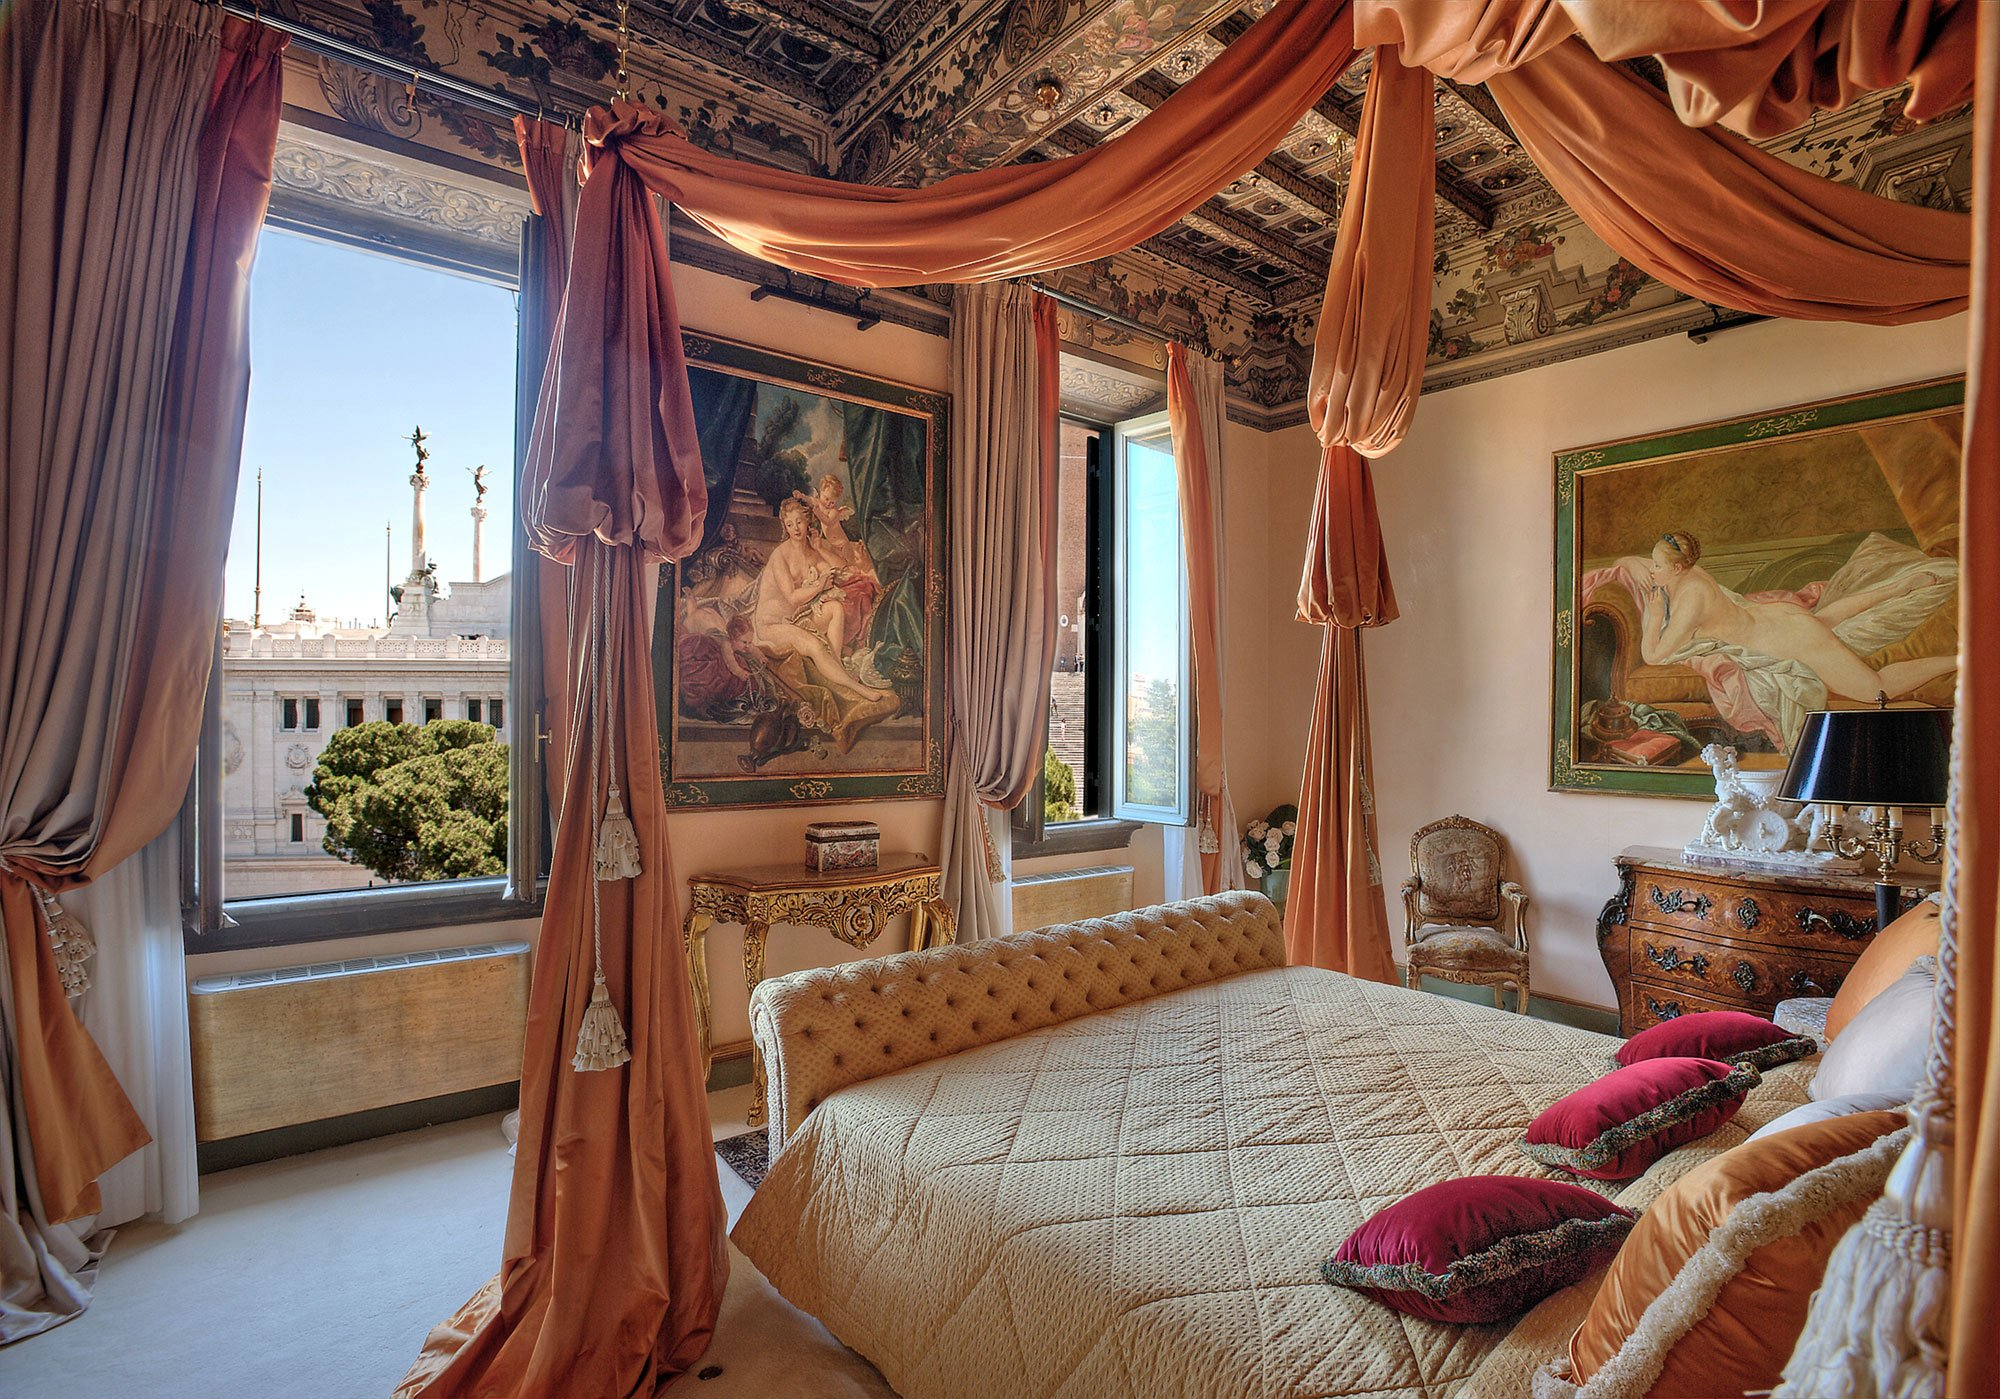 Housed in a former palace built in the 15th-century, the residence is a feast for the eyes both inside and out. The master bedroom is a sensory delight with its dramatic coffered and beamed ceiling, four-poster bed, and dressing room.